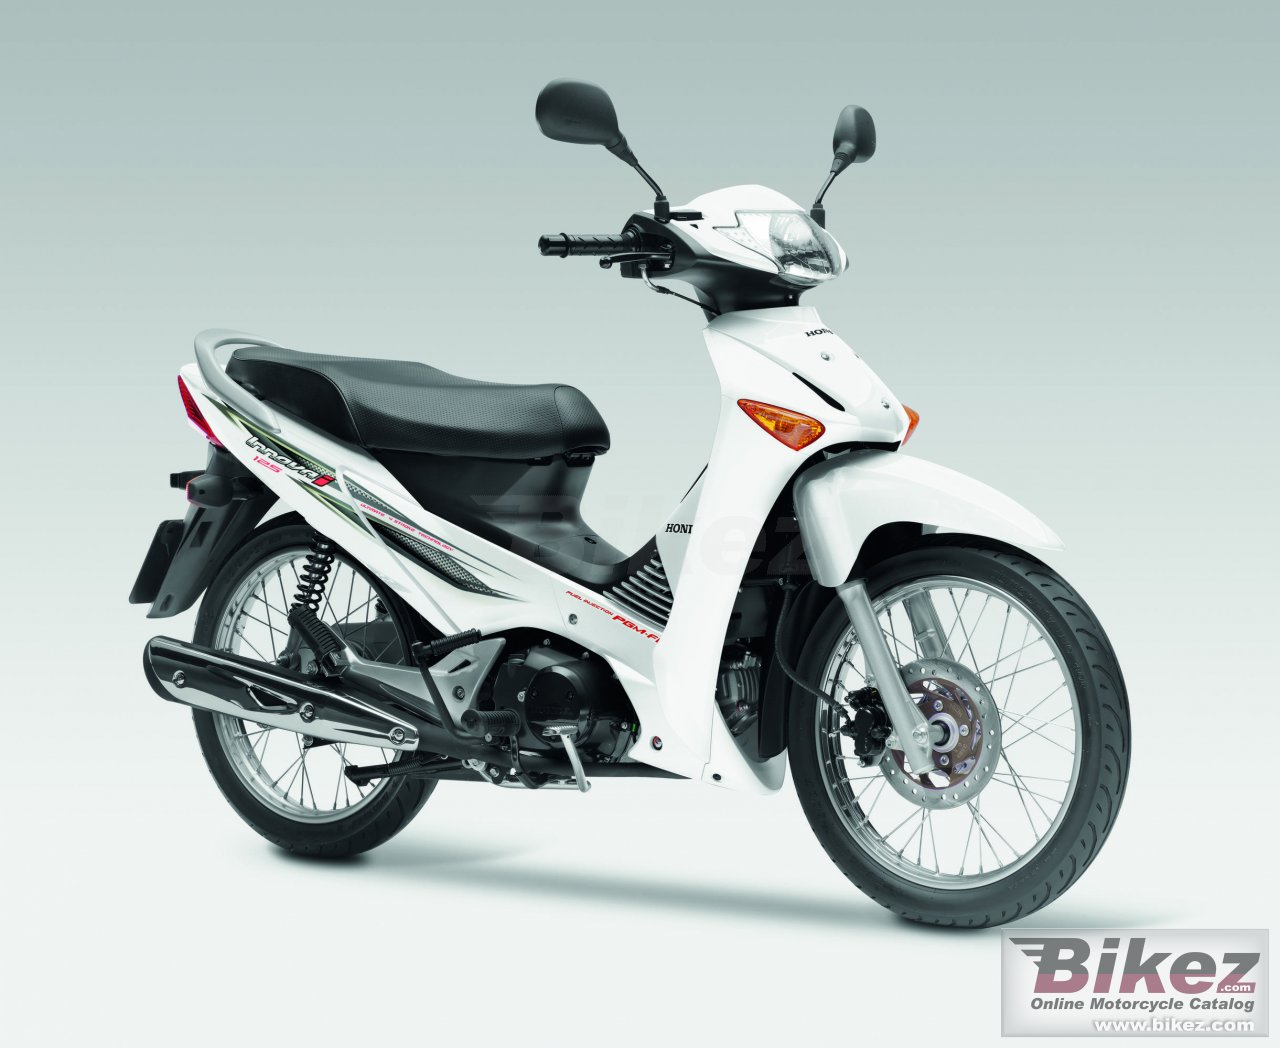 Big Honda anf125i innova picture and wallpaper from Bikez.com